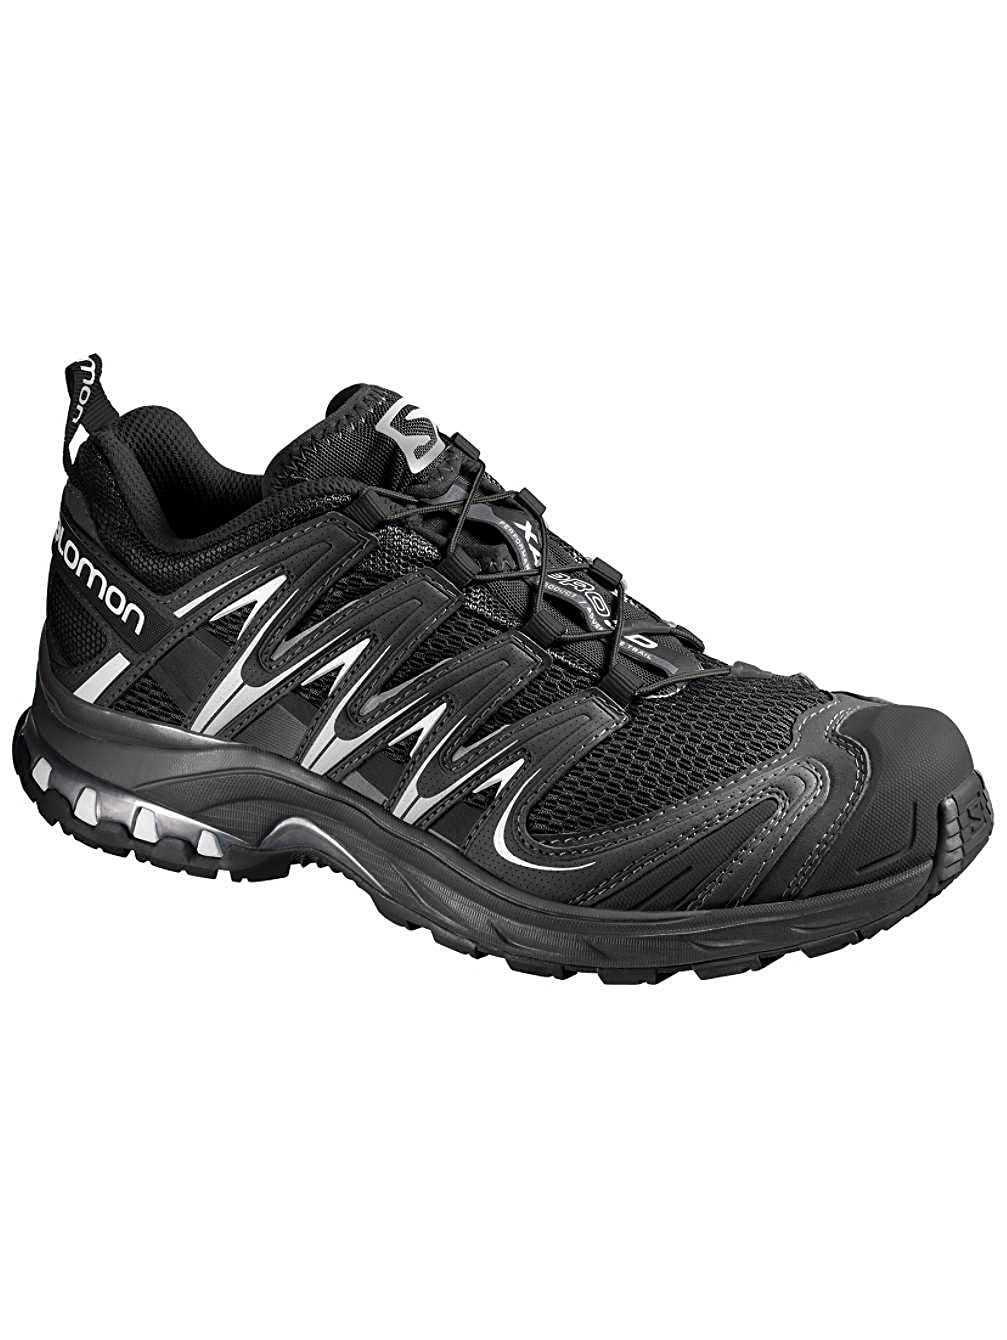 Salomon Damen XA PRO 3D Damen Salomon Traillaufschuhe 47d70c